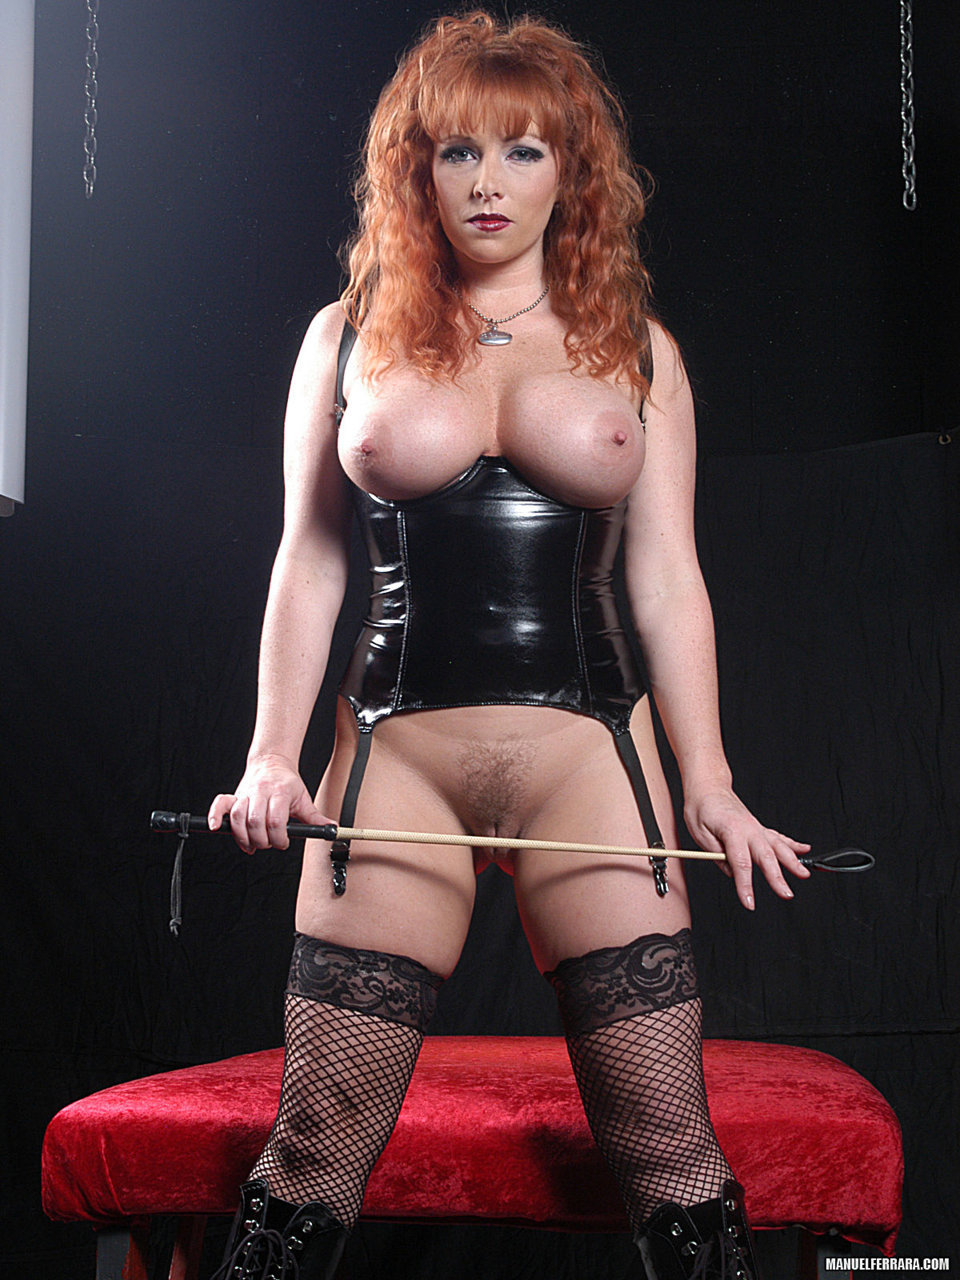 Redhaired and curvy domme